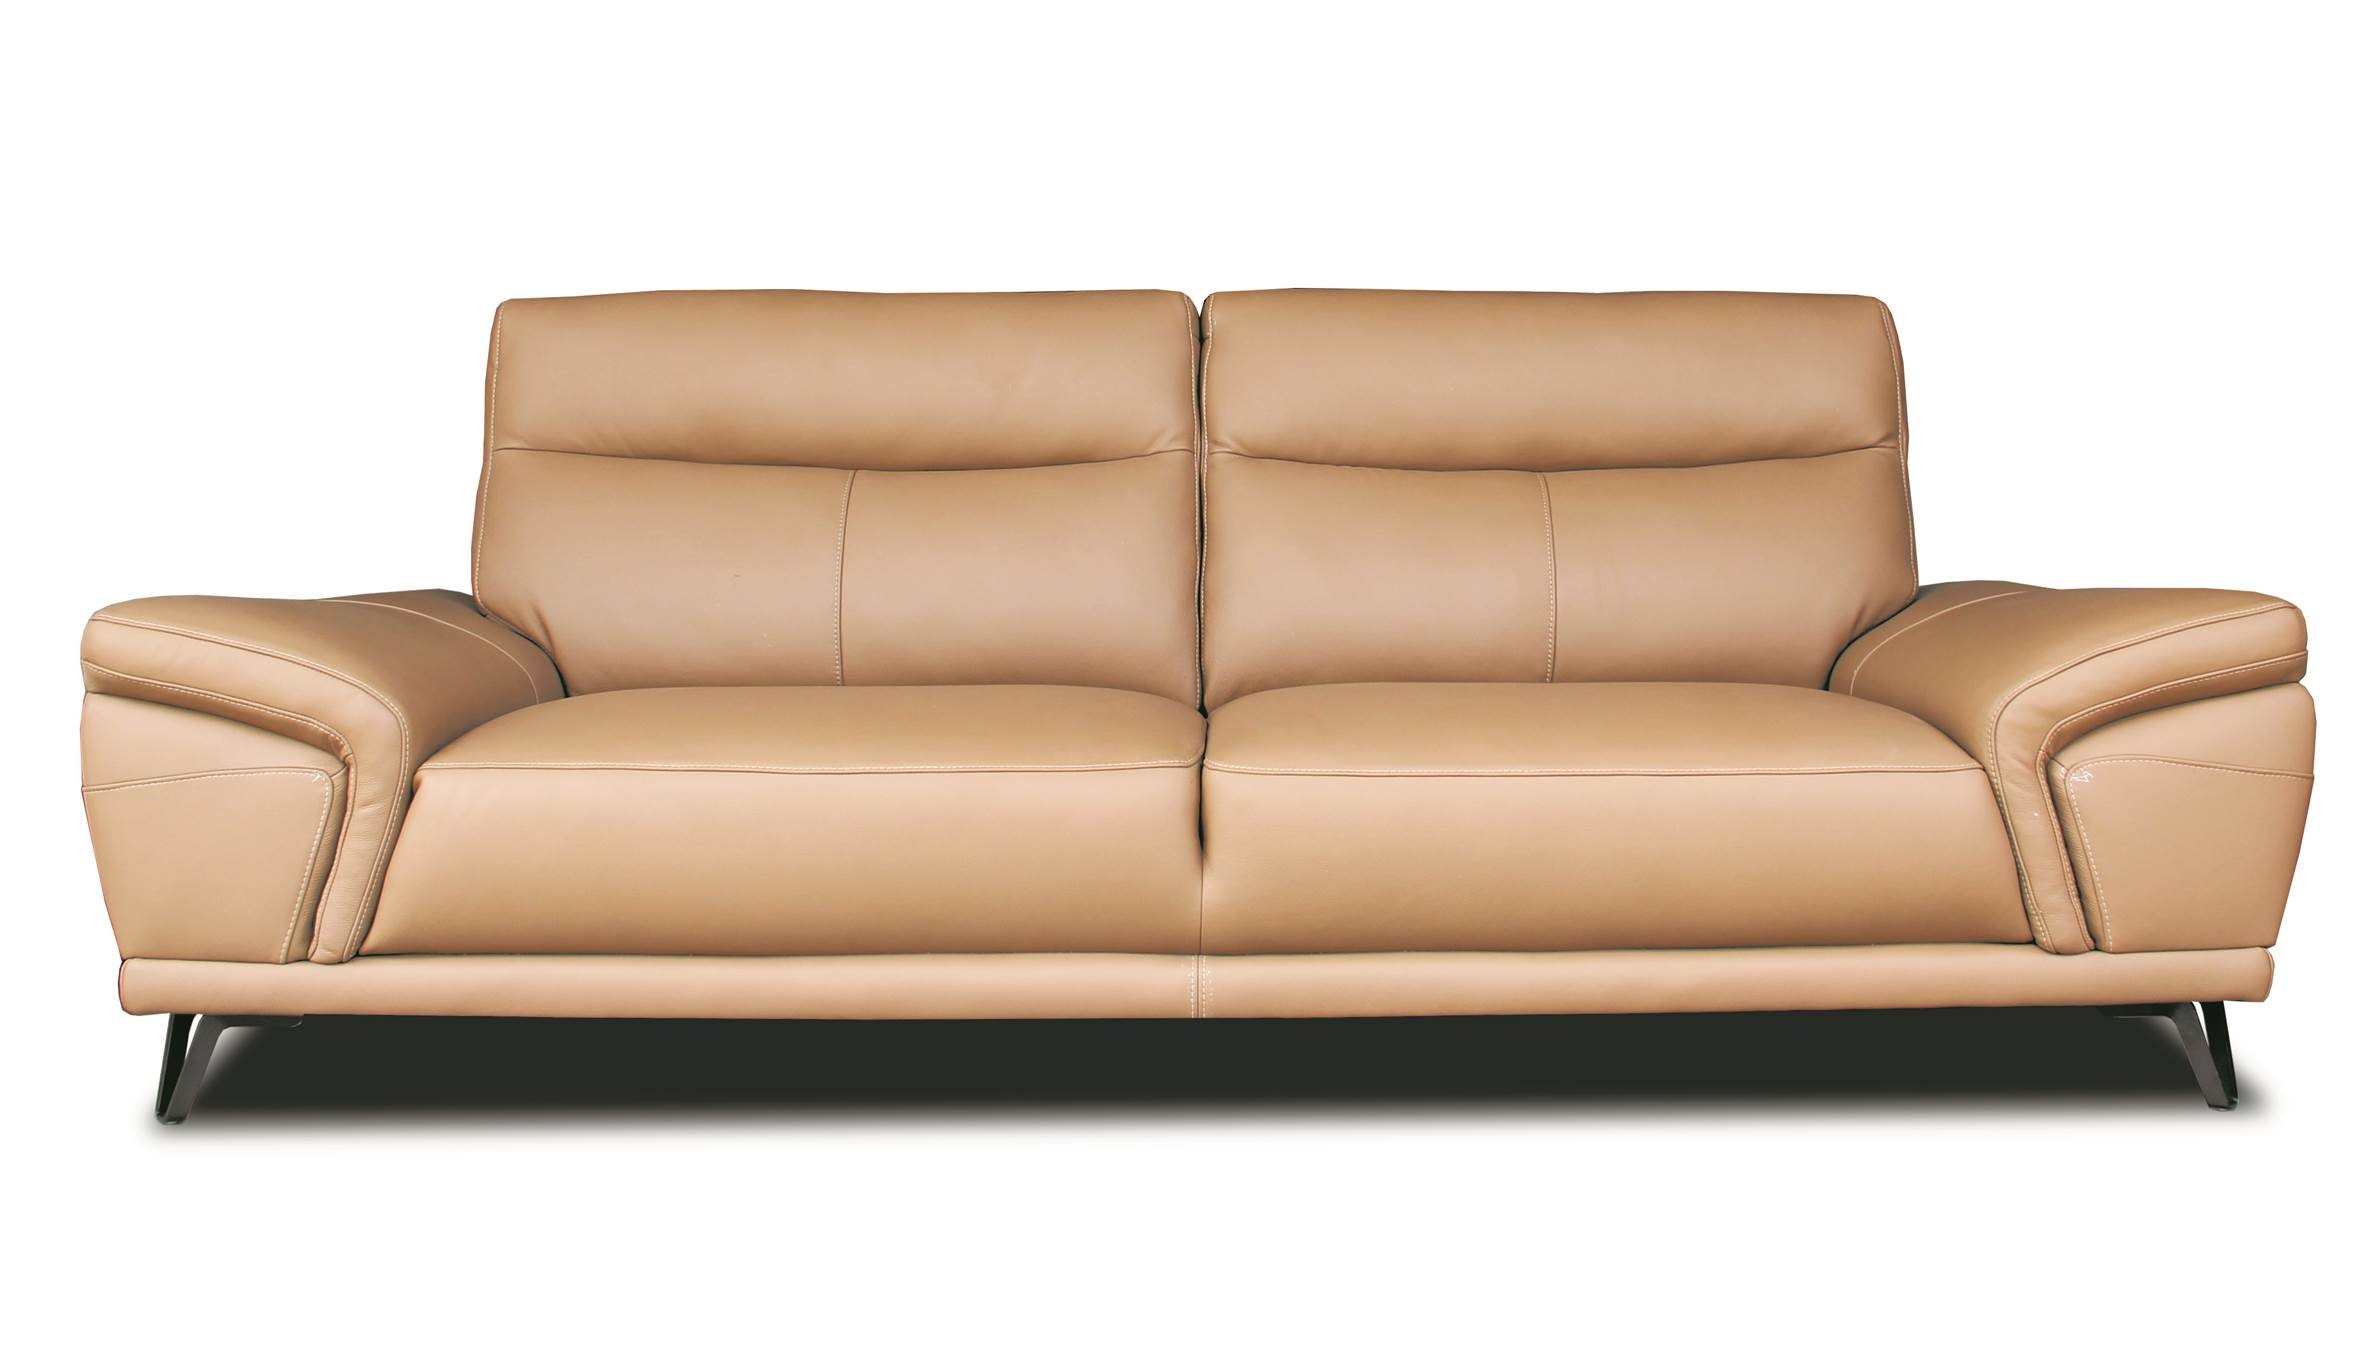 Hilker Kingdom 3 Seater Leather Sofa